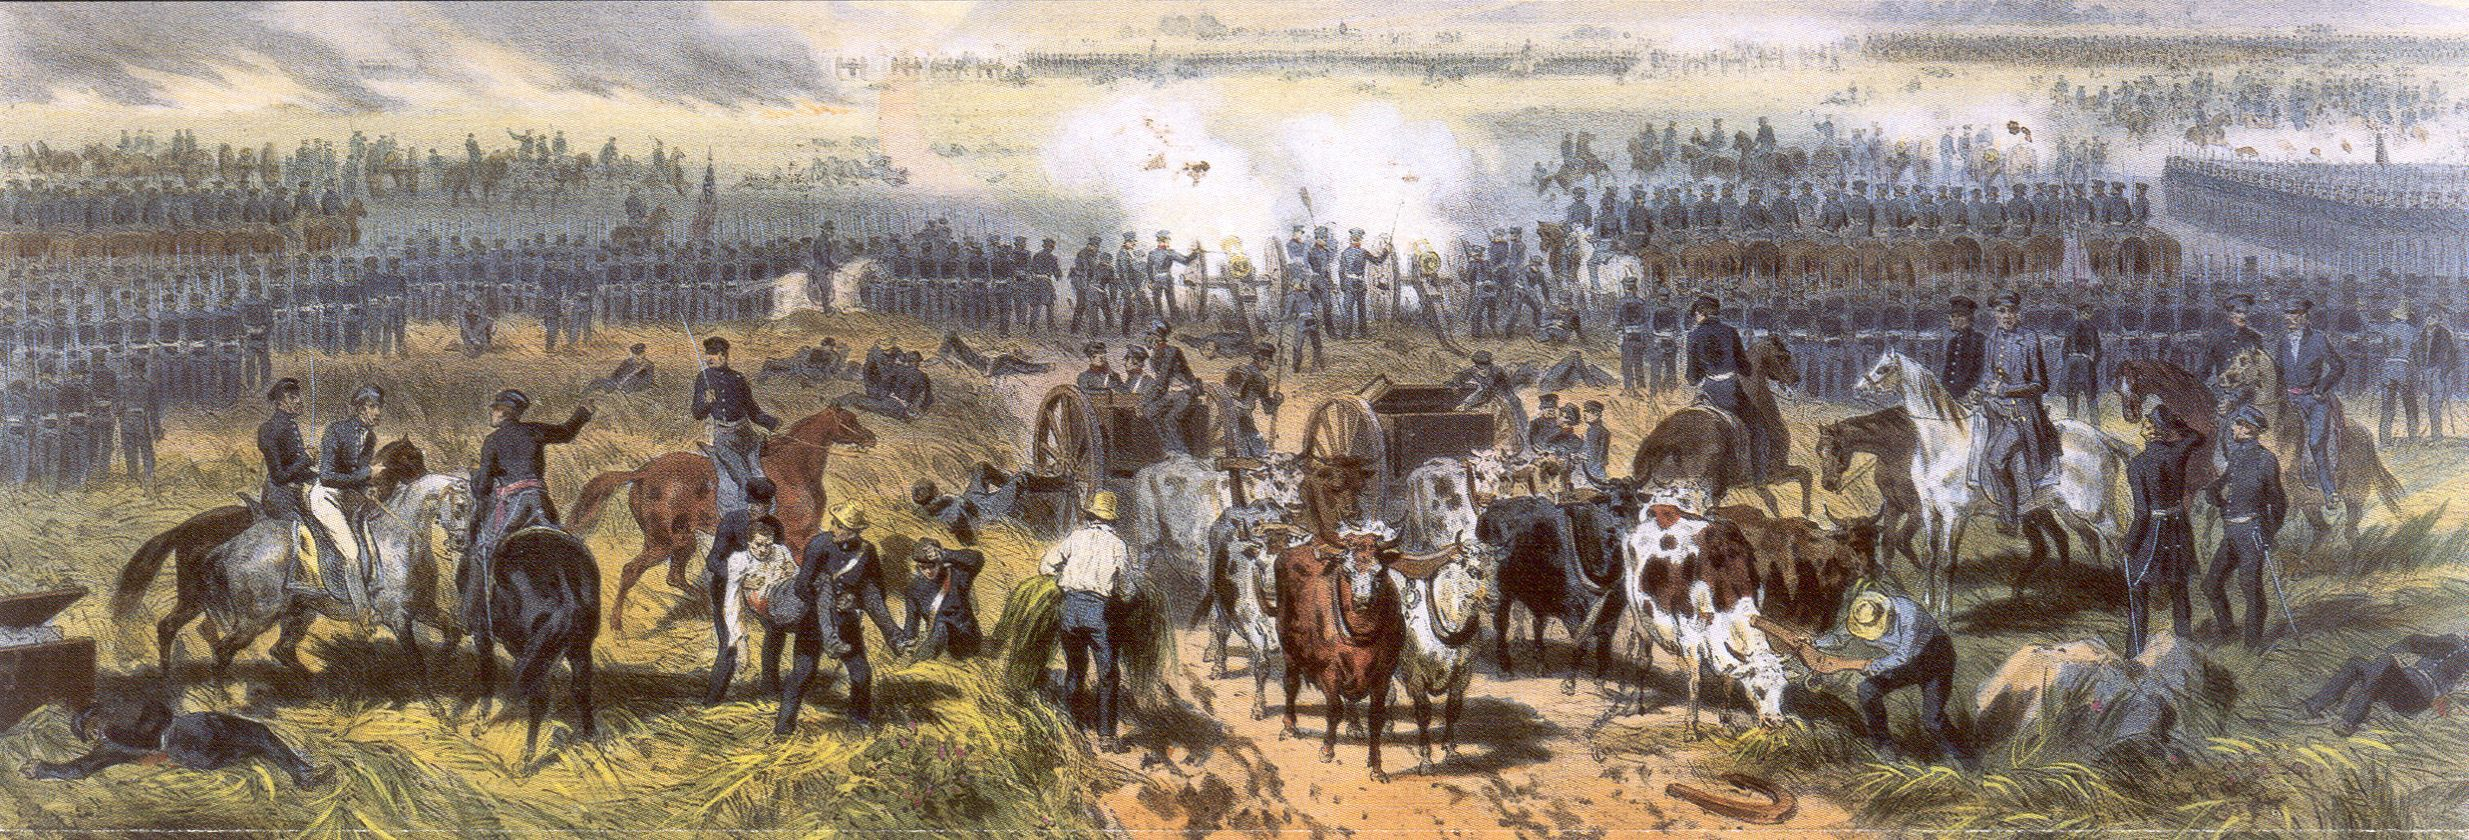 Mexican War 1846 Gen Zachary Taylor On White Horse Right Directs The Battle Mexican American War Mexican War Pictures Of Soldiers